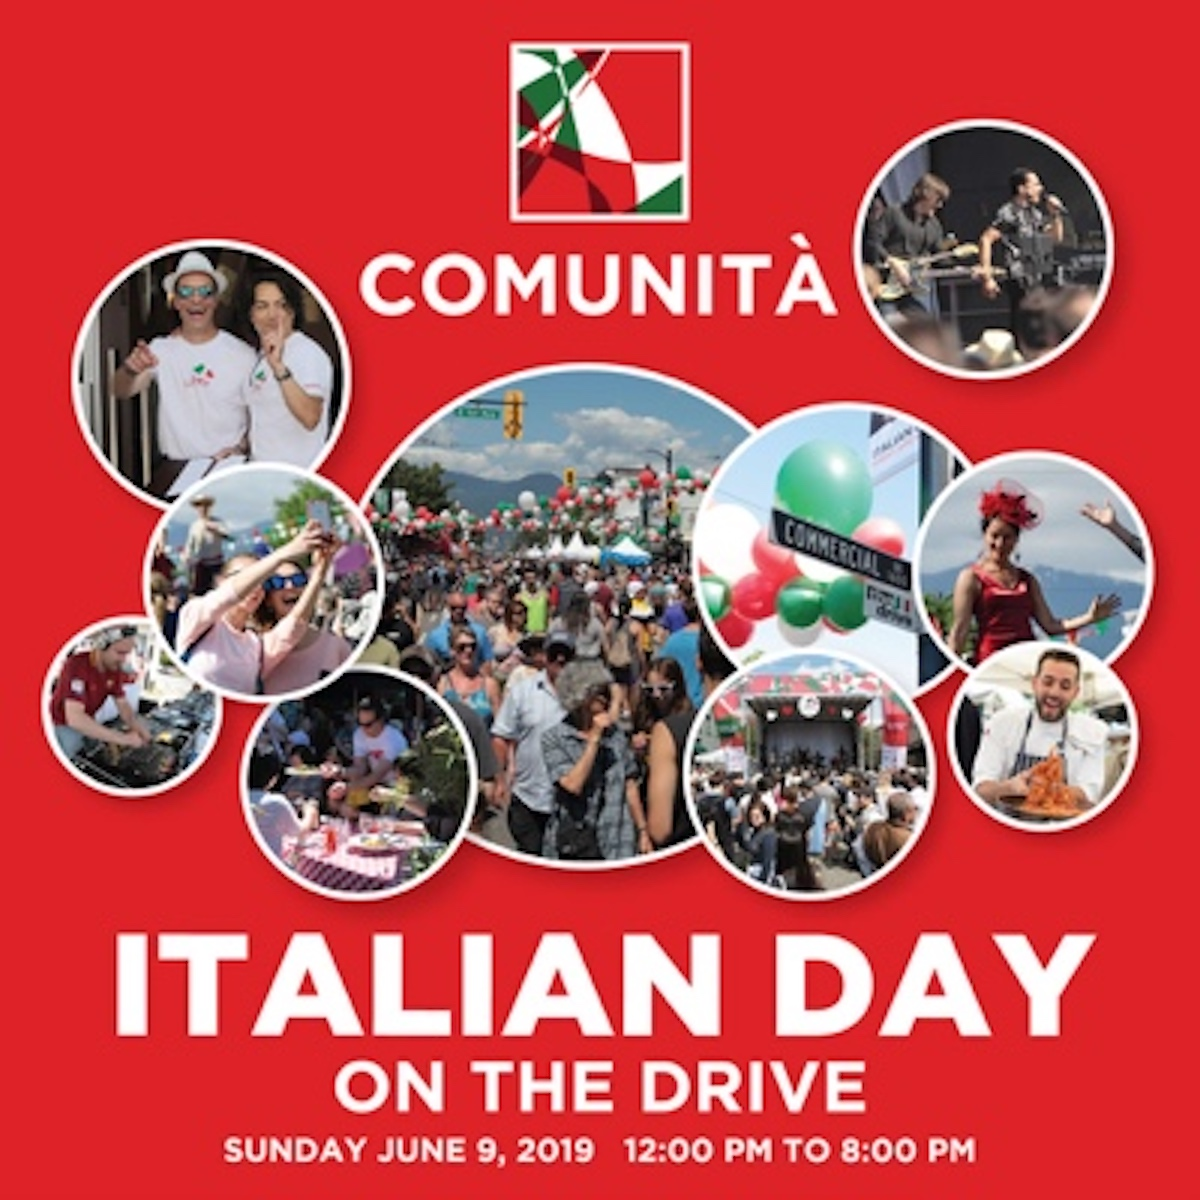 Italian Day on the Drive has Arrived! Sunday, June 9 noon – 8 pm